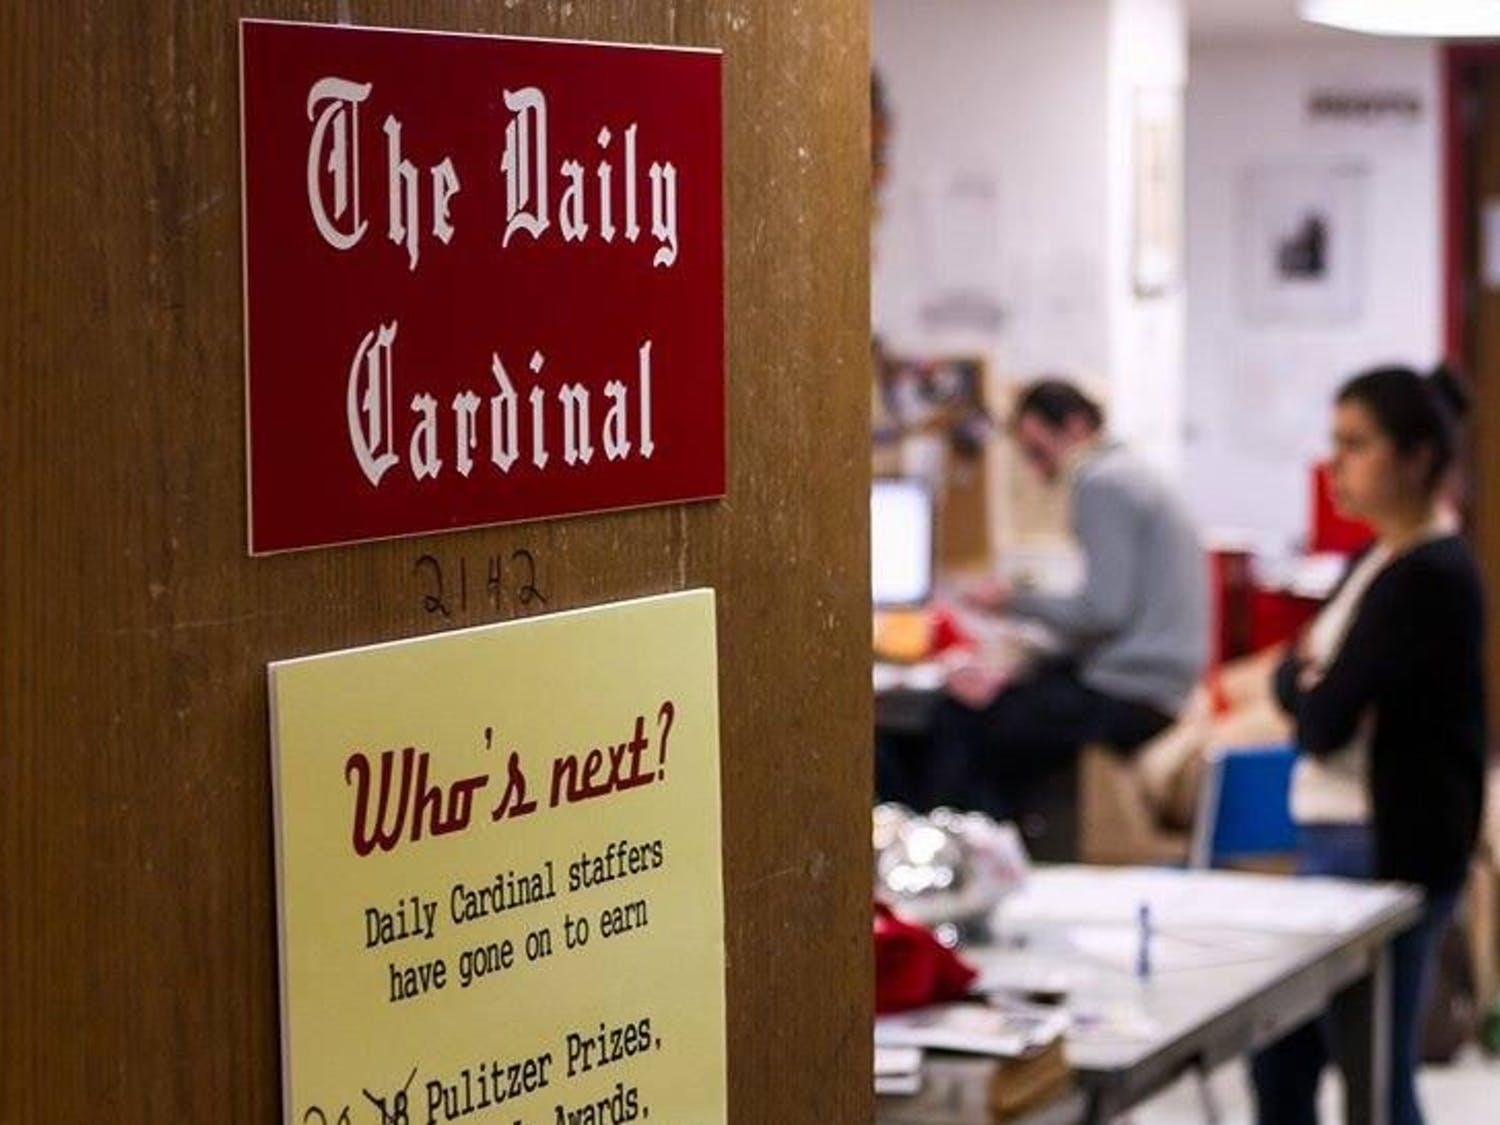 The Daily Cardinal will continue to publish coverage online, with staff working remotely.